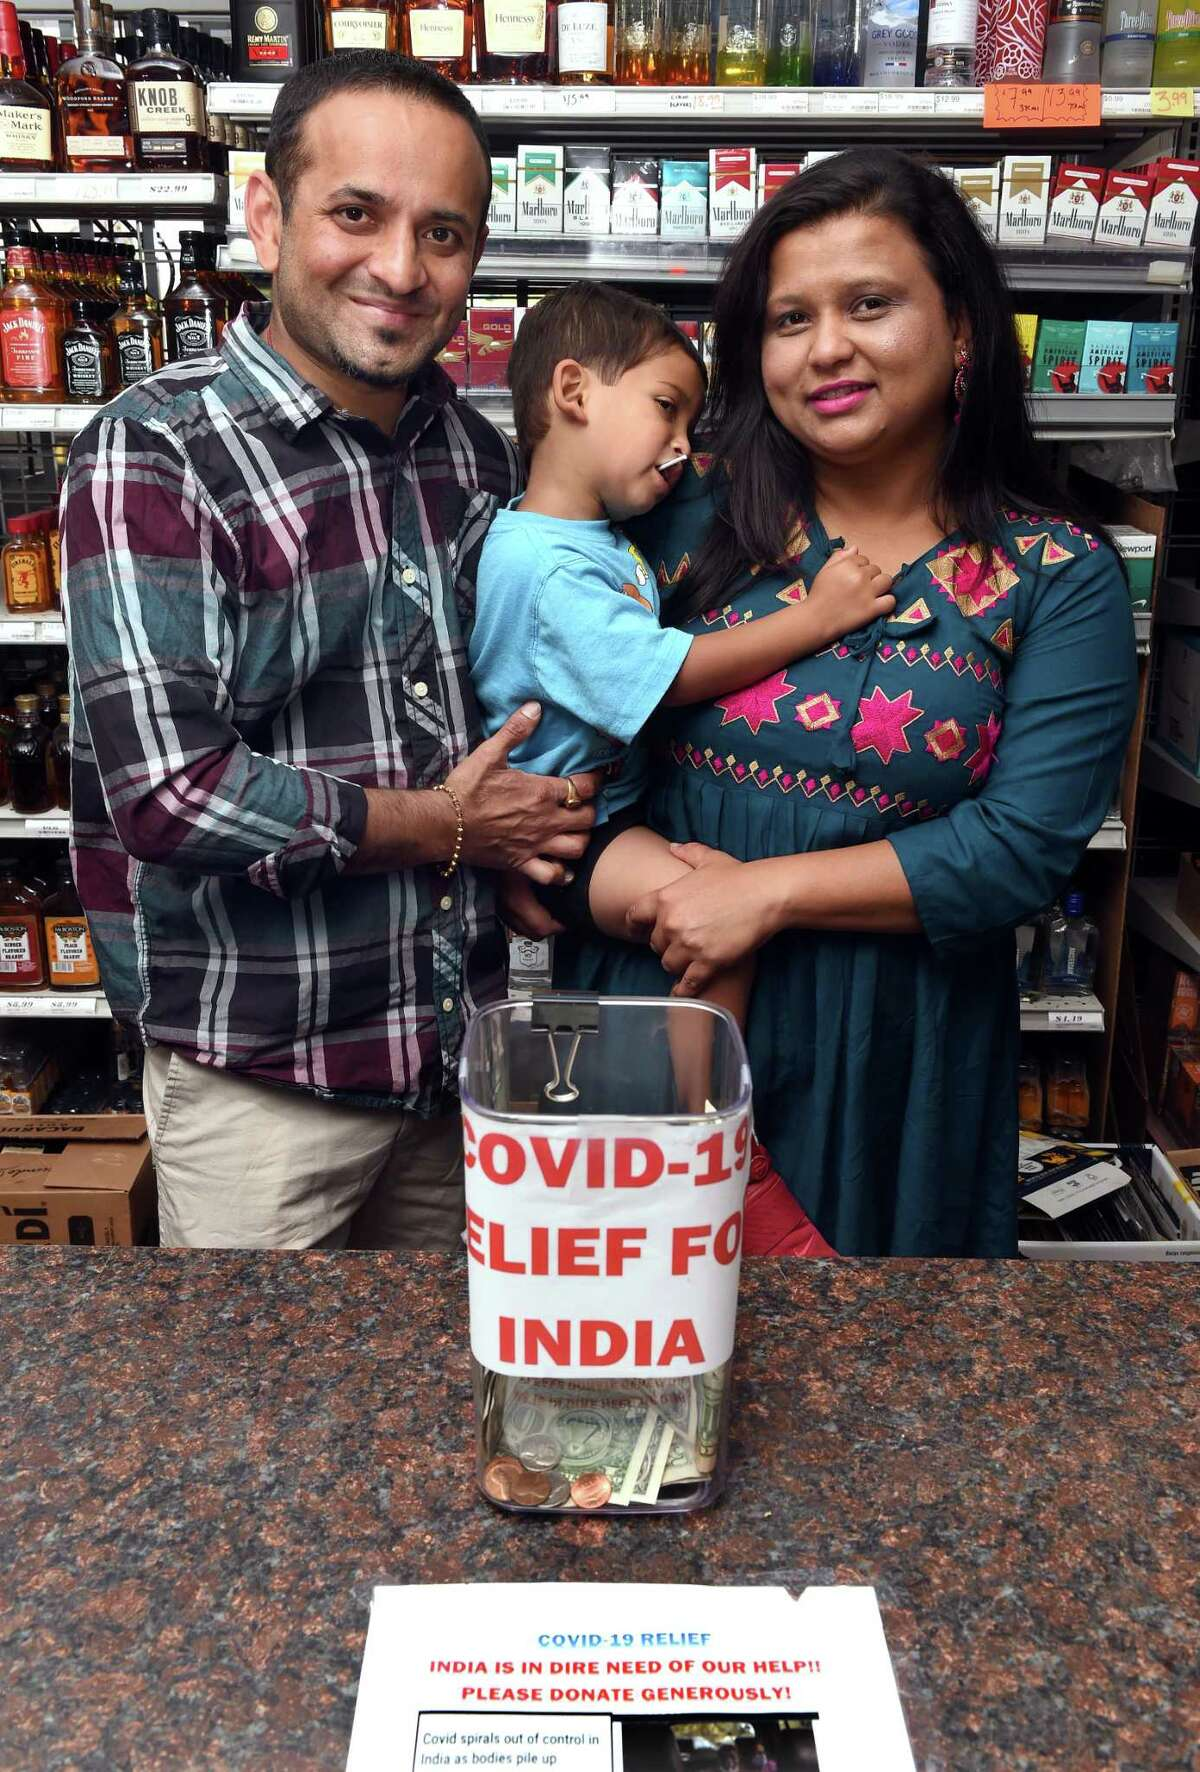 Keyur Patel, left, with his wife, Nital, and son, Ved, 31/2, behind the counter of one of the family's package stores, Town & Country Liquors in Bethany, May 19, 2021, where he is raising funds and matching donations for COVID-19 relief in India.